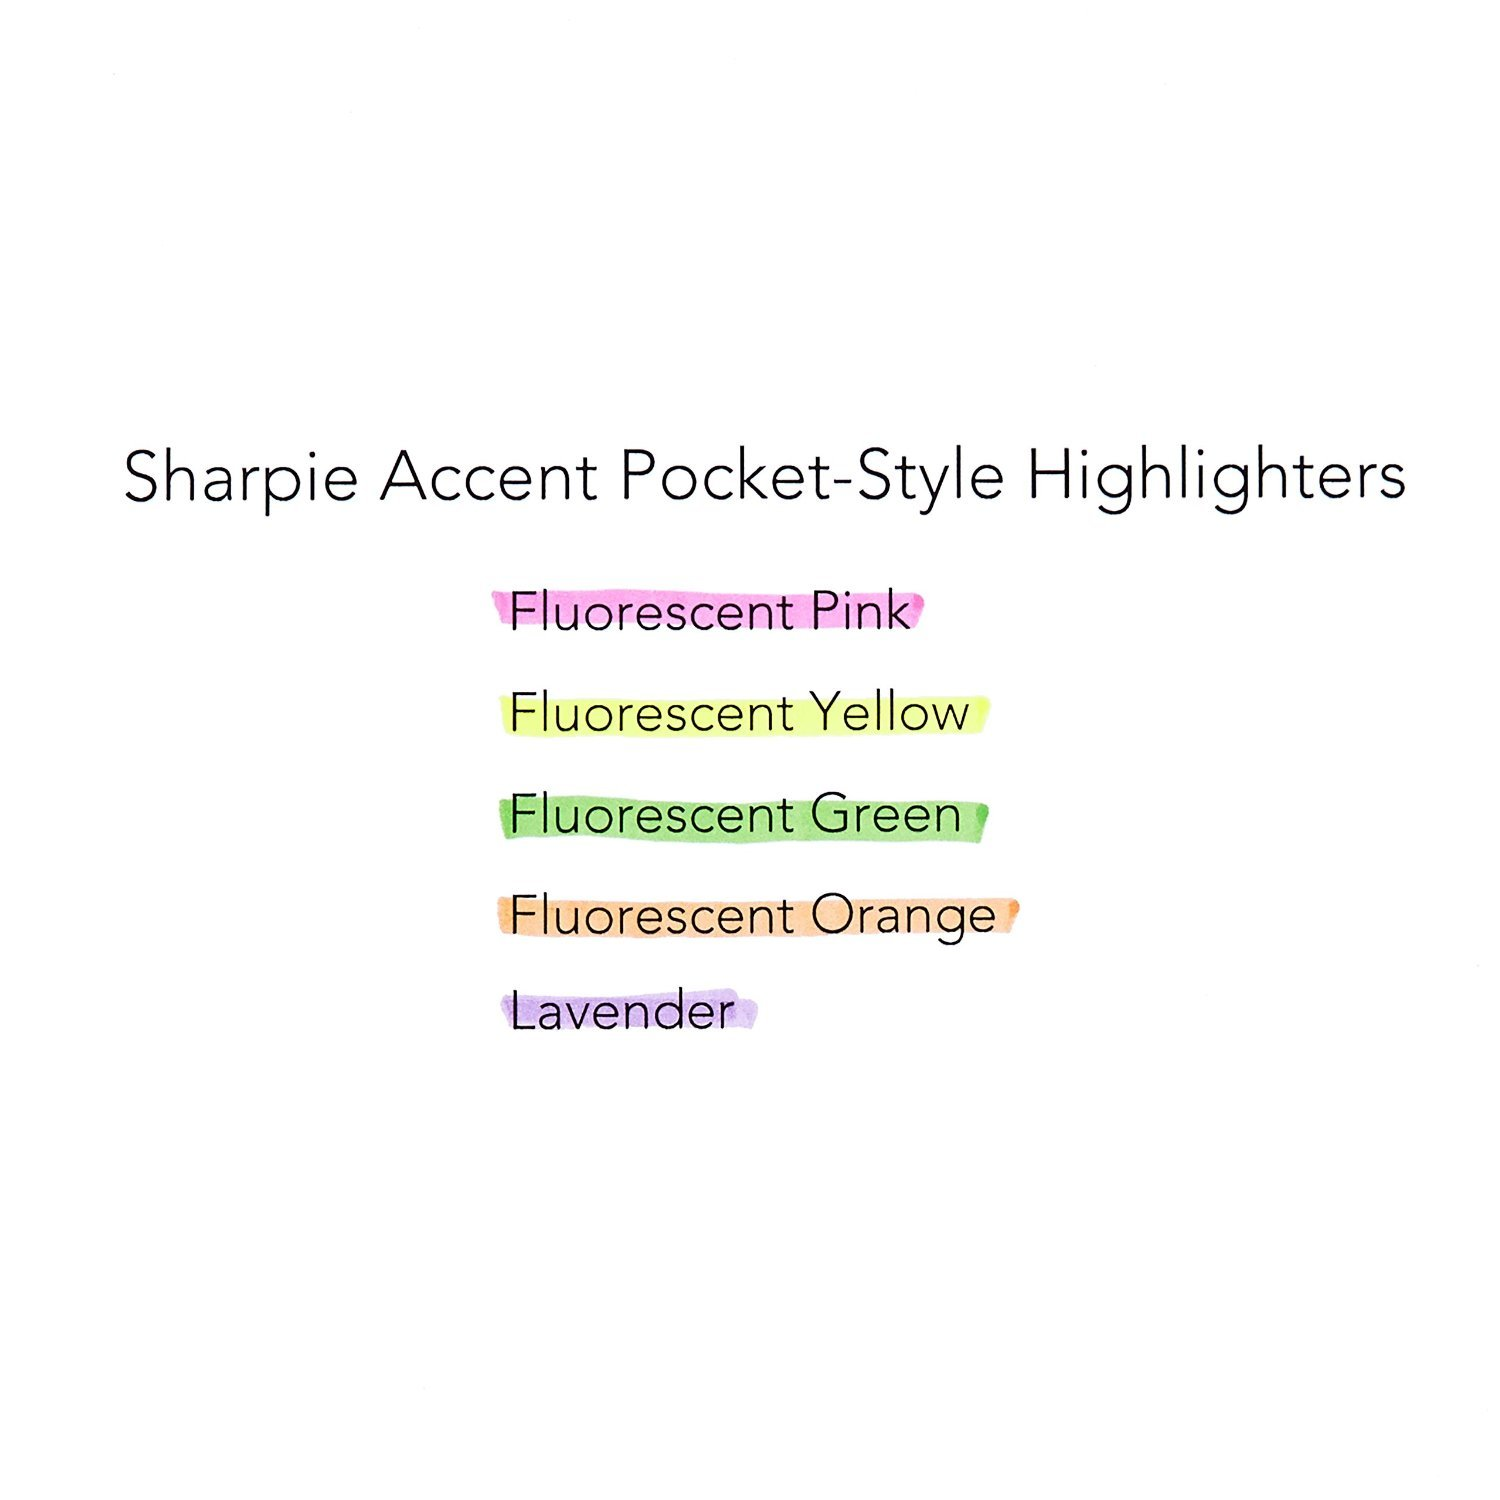 Sharpie Accent Pocket-Style Highlighters, Fluorescent Yellow, 48 Count by Sharpie (Image #3)